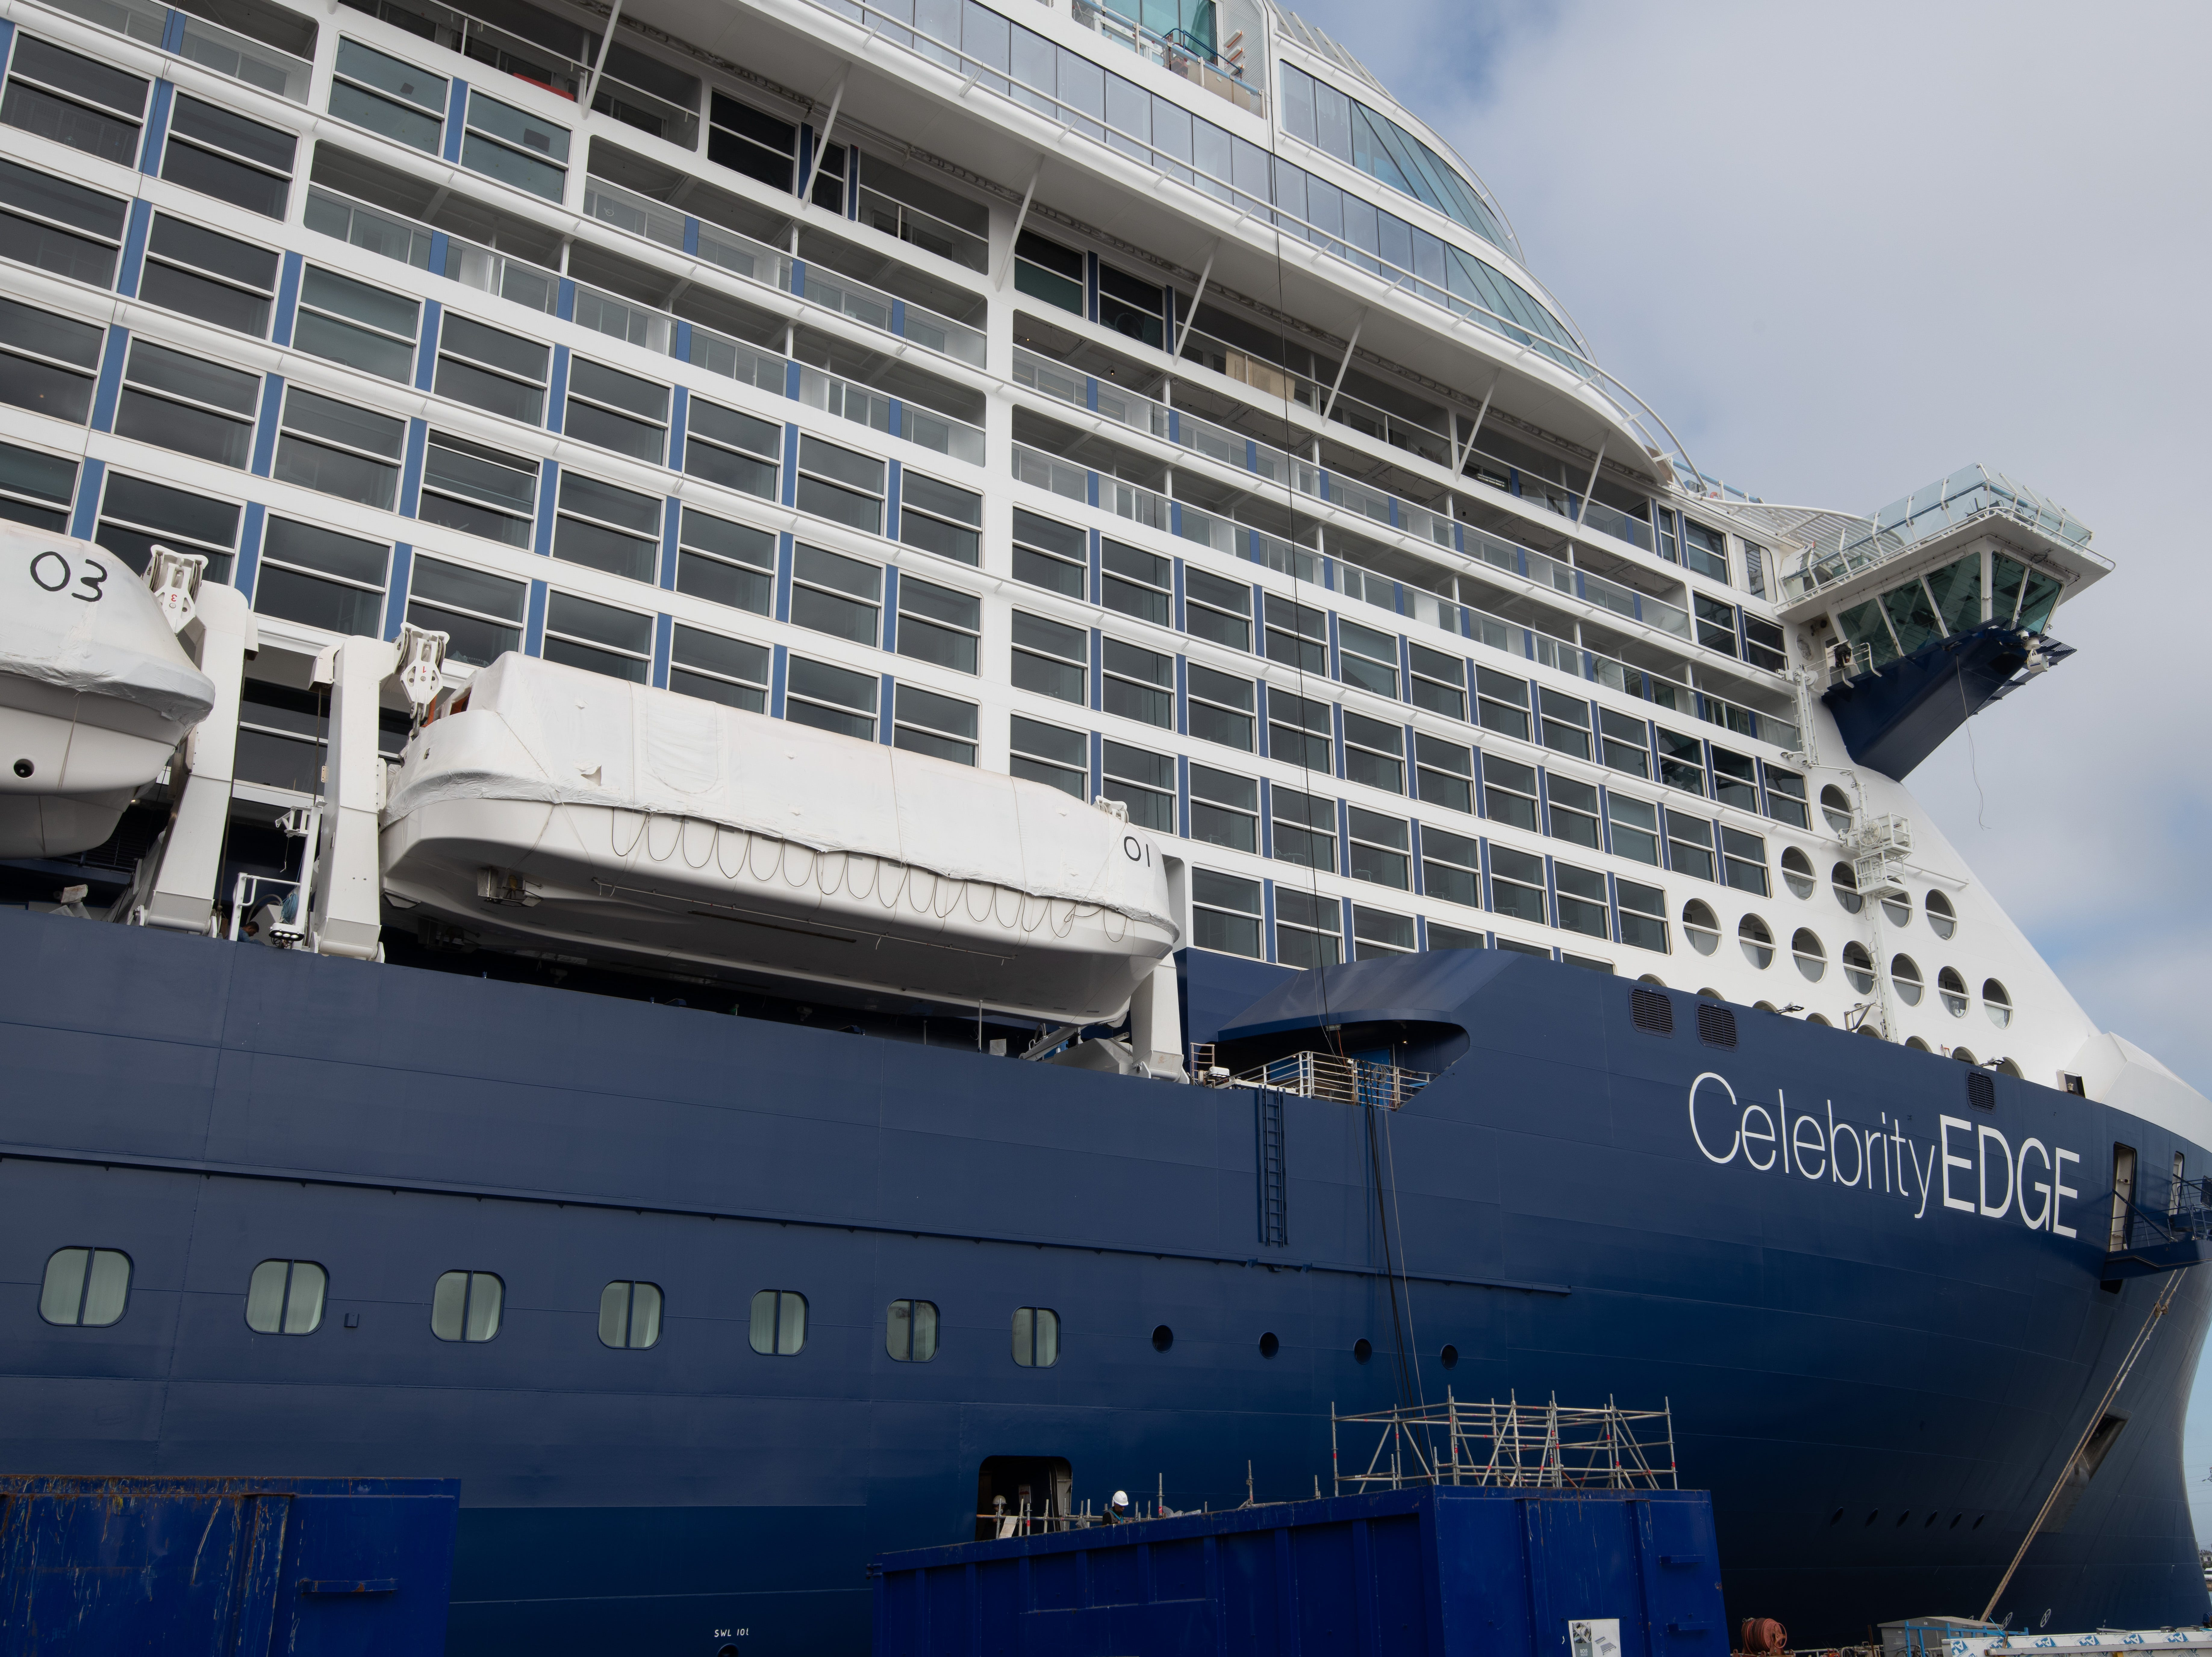 Currently under construction at the Chantiers de l'Atlantique shipyard in St. Nazaire, France, Celebrity Edge is the first of a new series of vessels on order for the line.